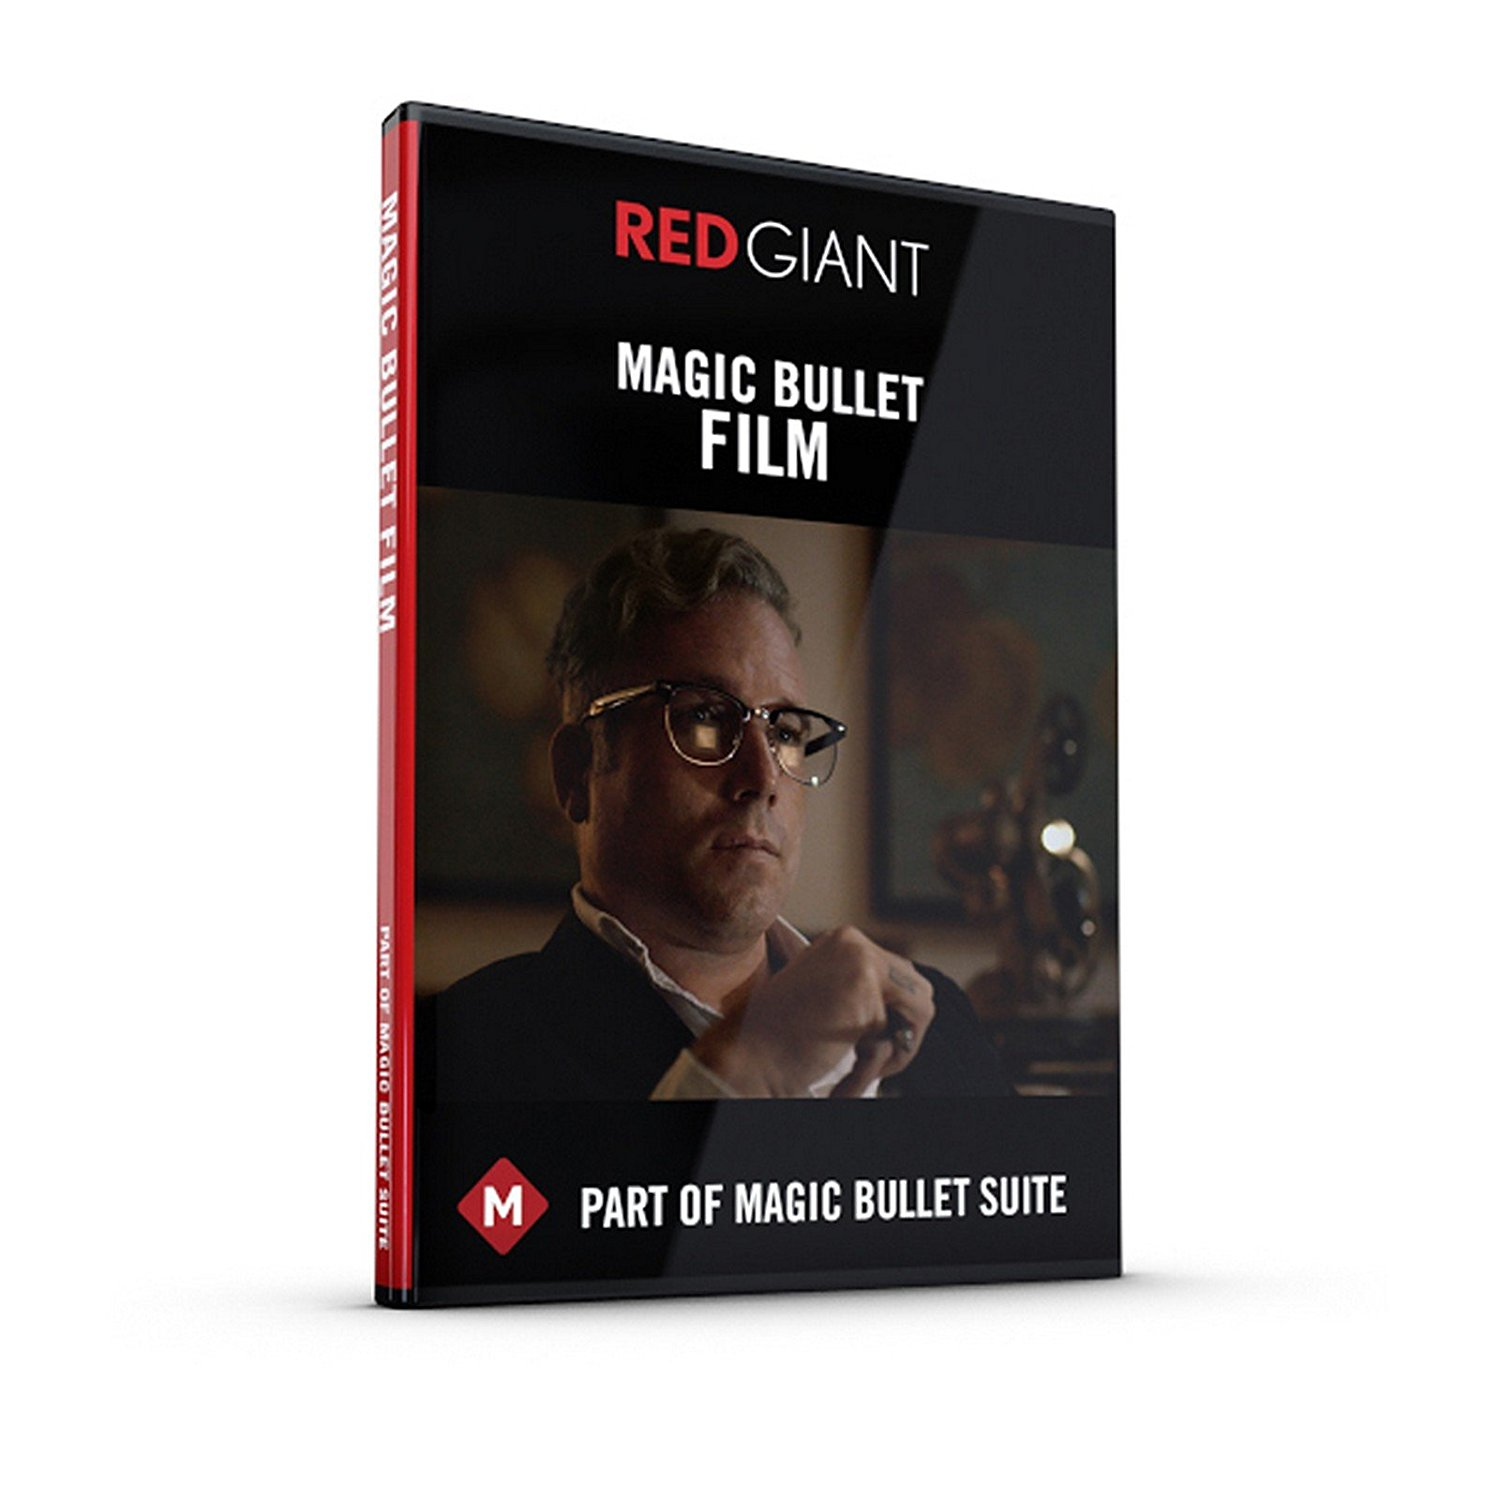 Red Giant Magic Bullet Film 1.2 | Motion Picture Film Photochemical Process Software Download Only